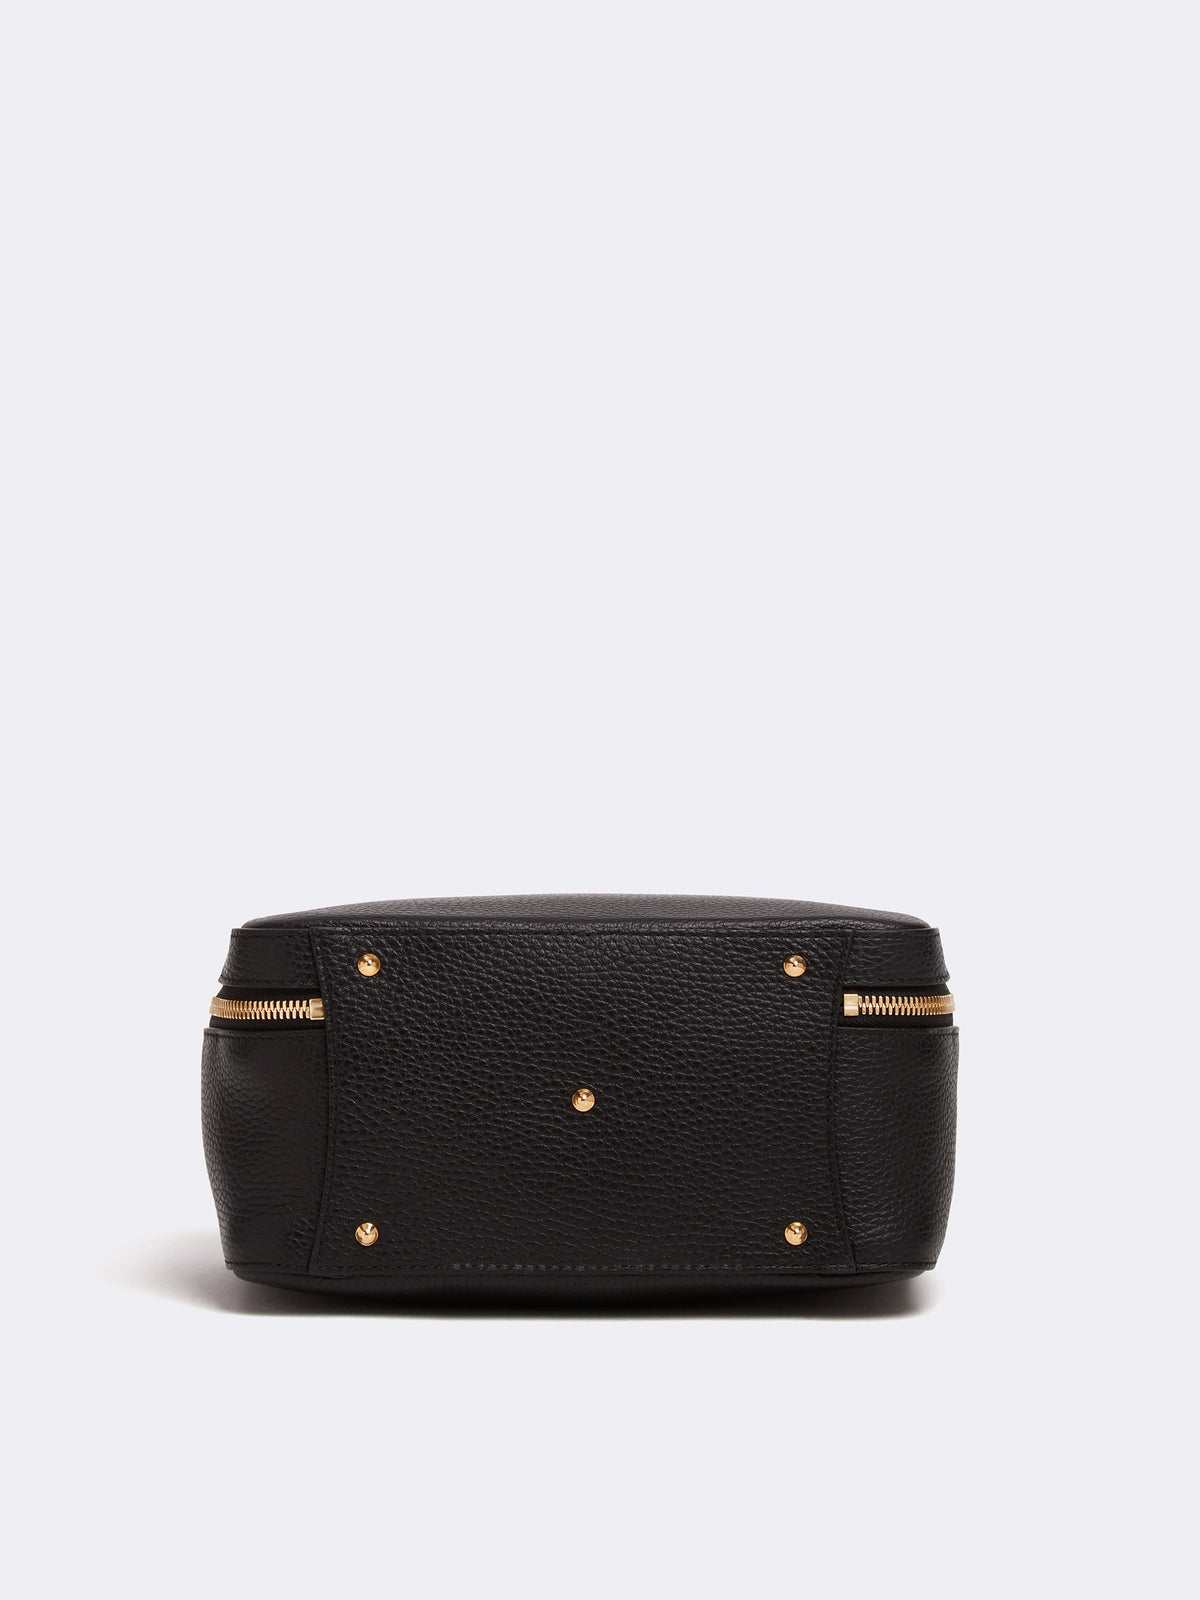 Mark Cross Laura Leather Crossbody Bag Pebble Grain Black Side